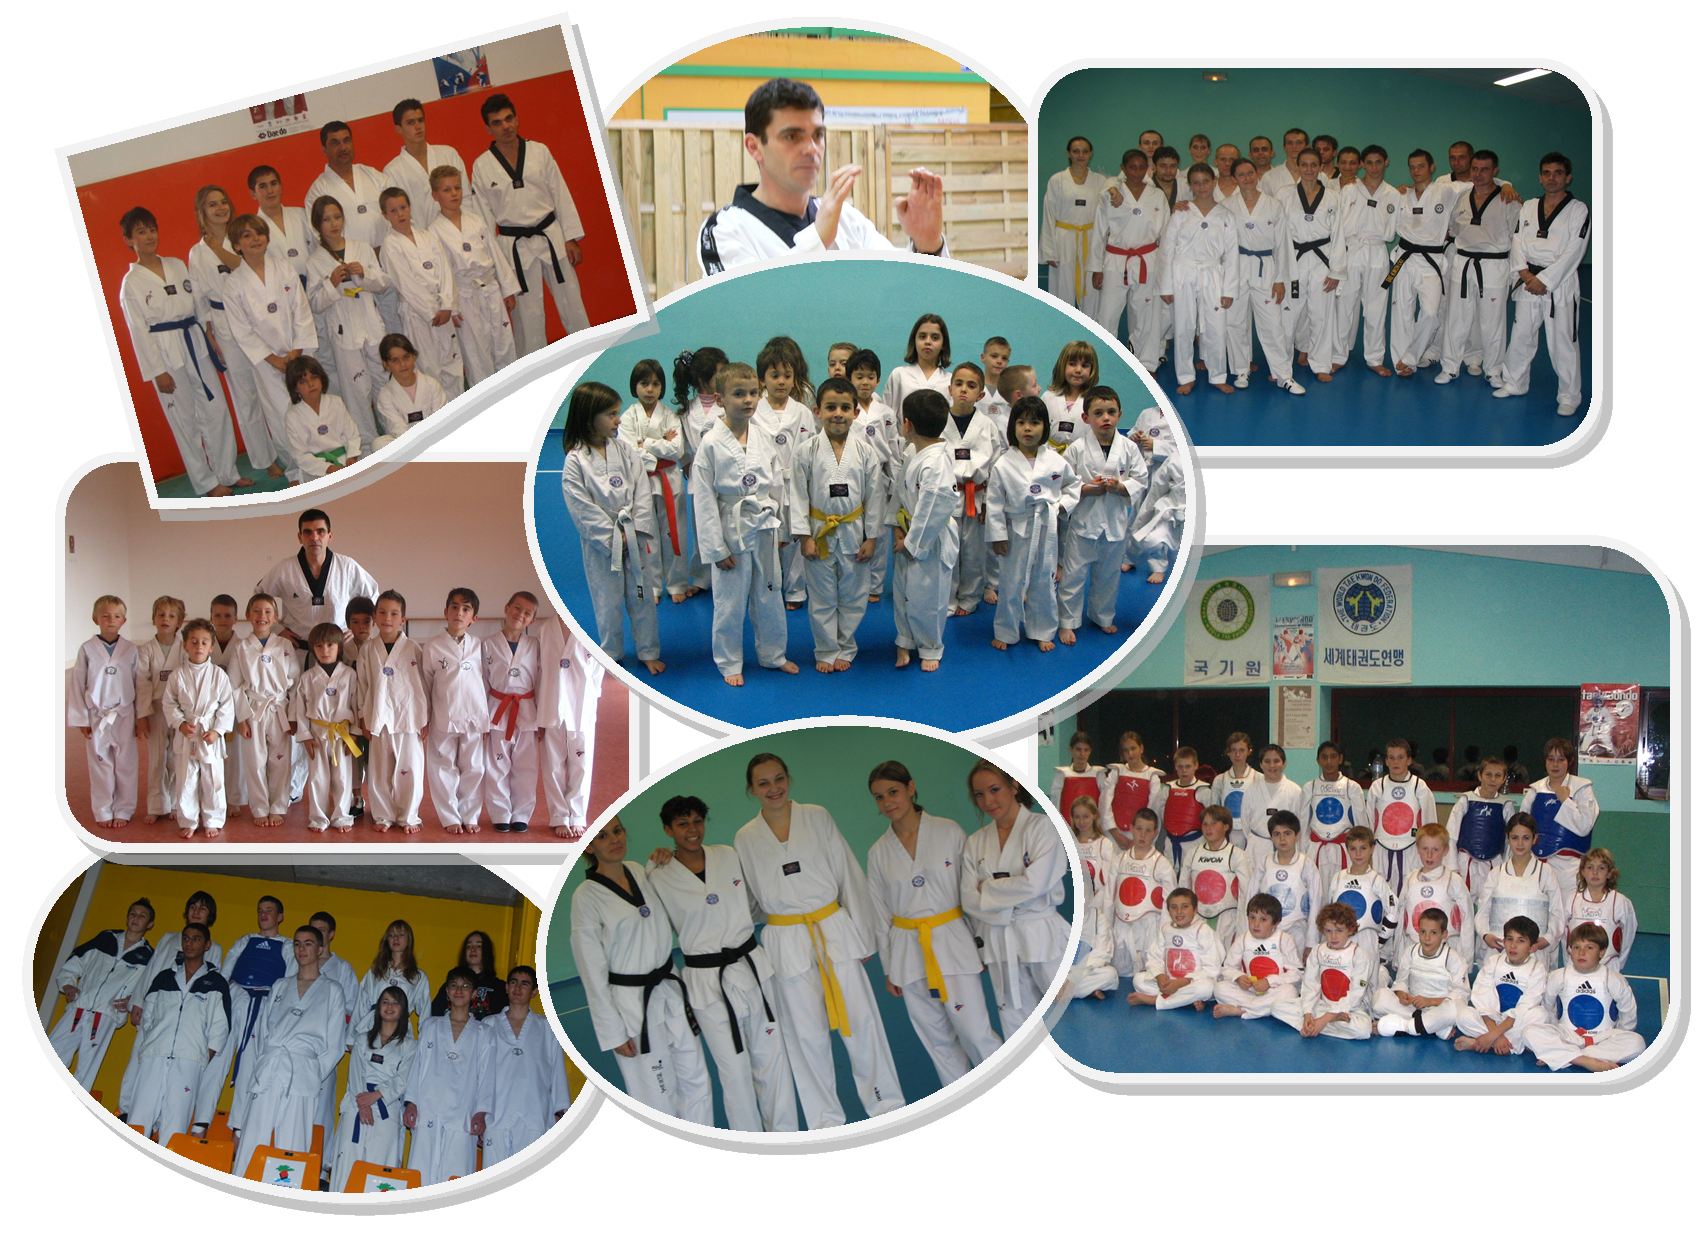 groupe tkd club Hanches/Jouy